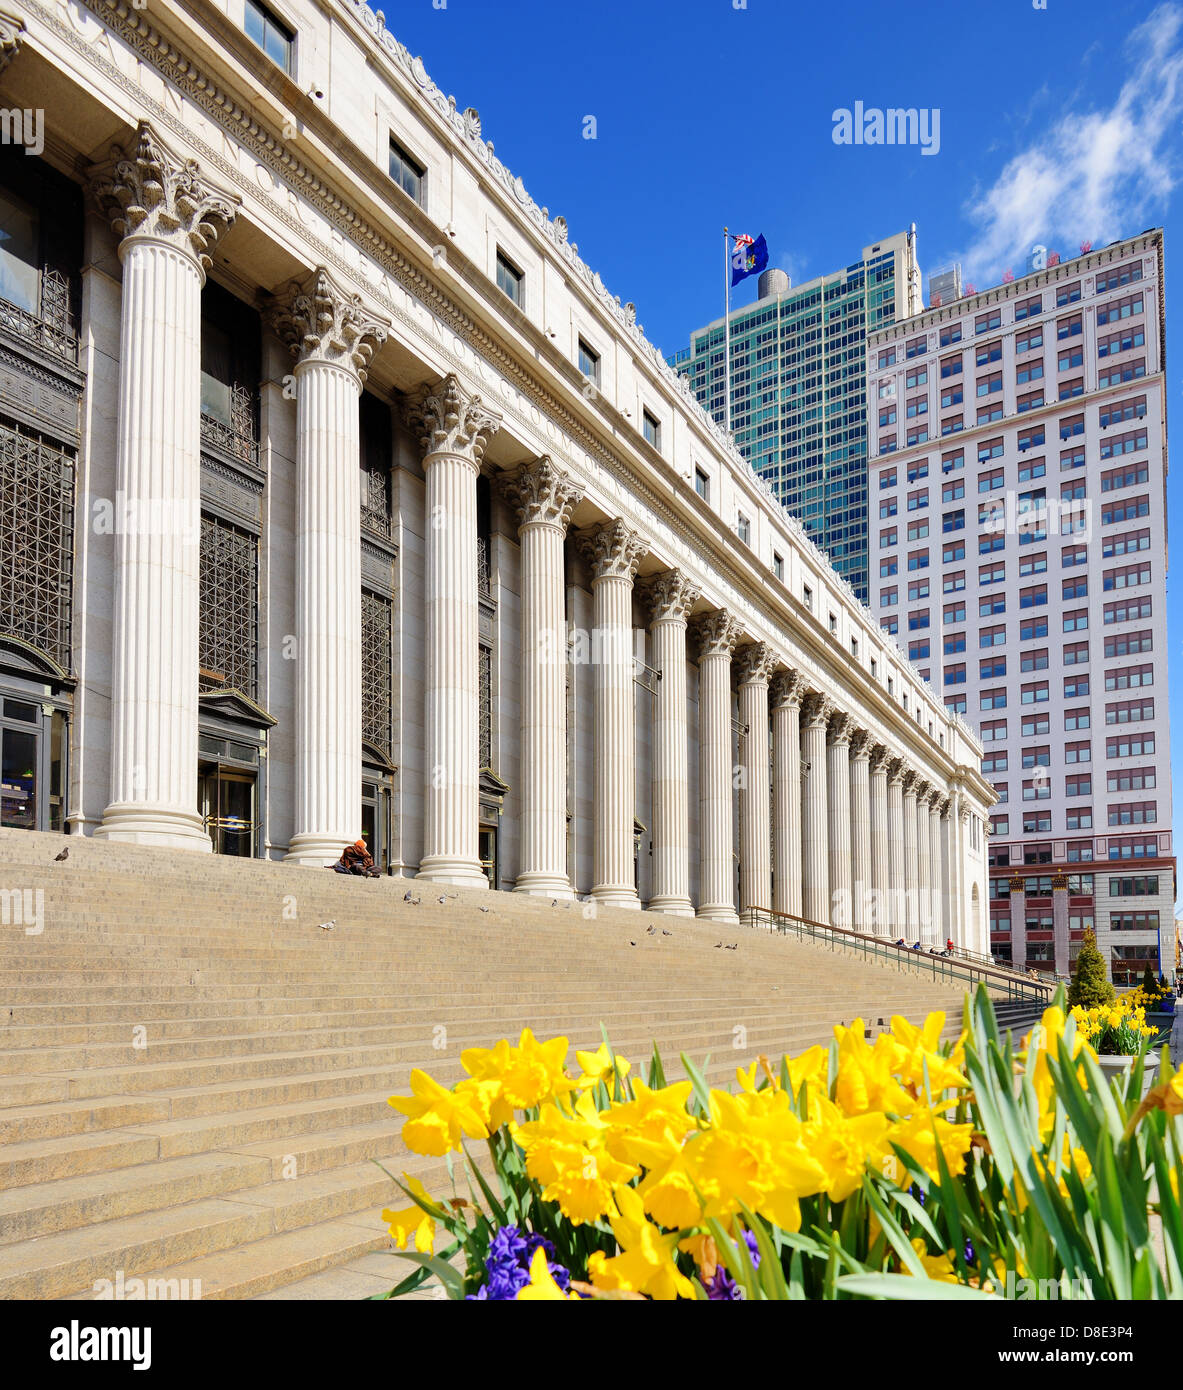 James Farley Post Office April in New York, NY. - Stock Image